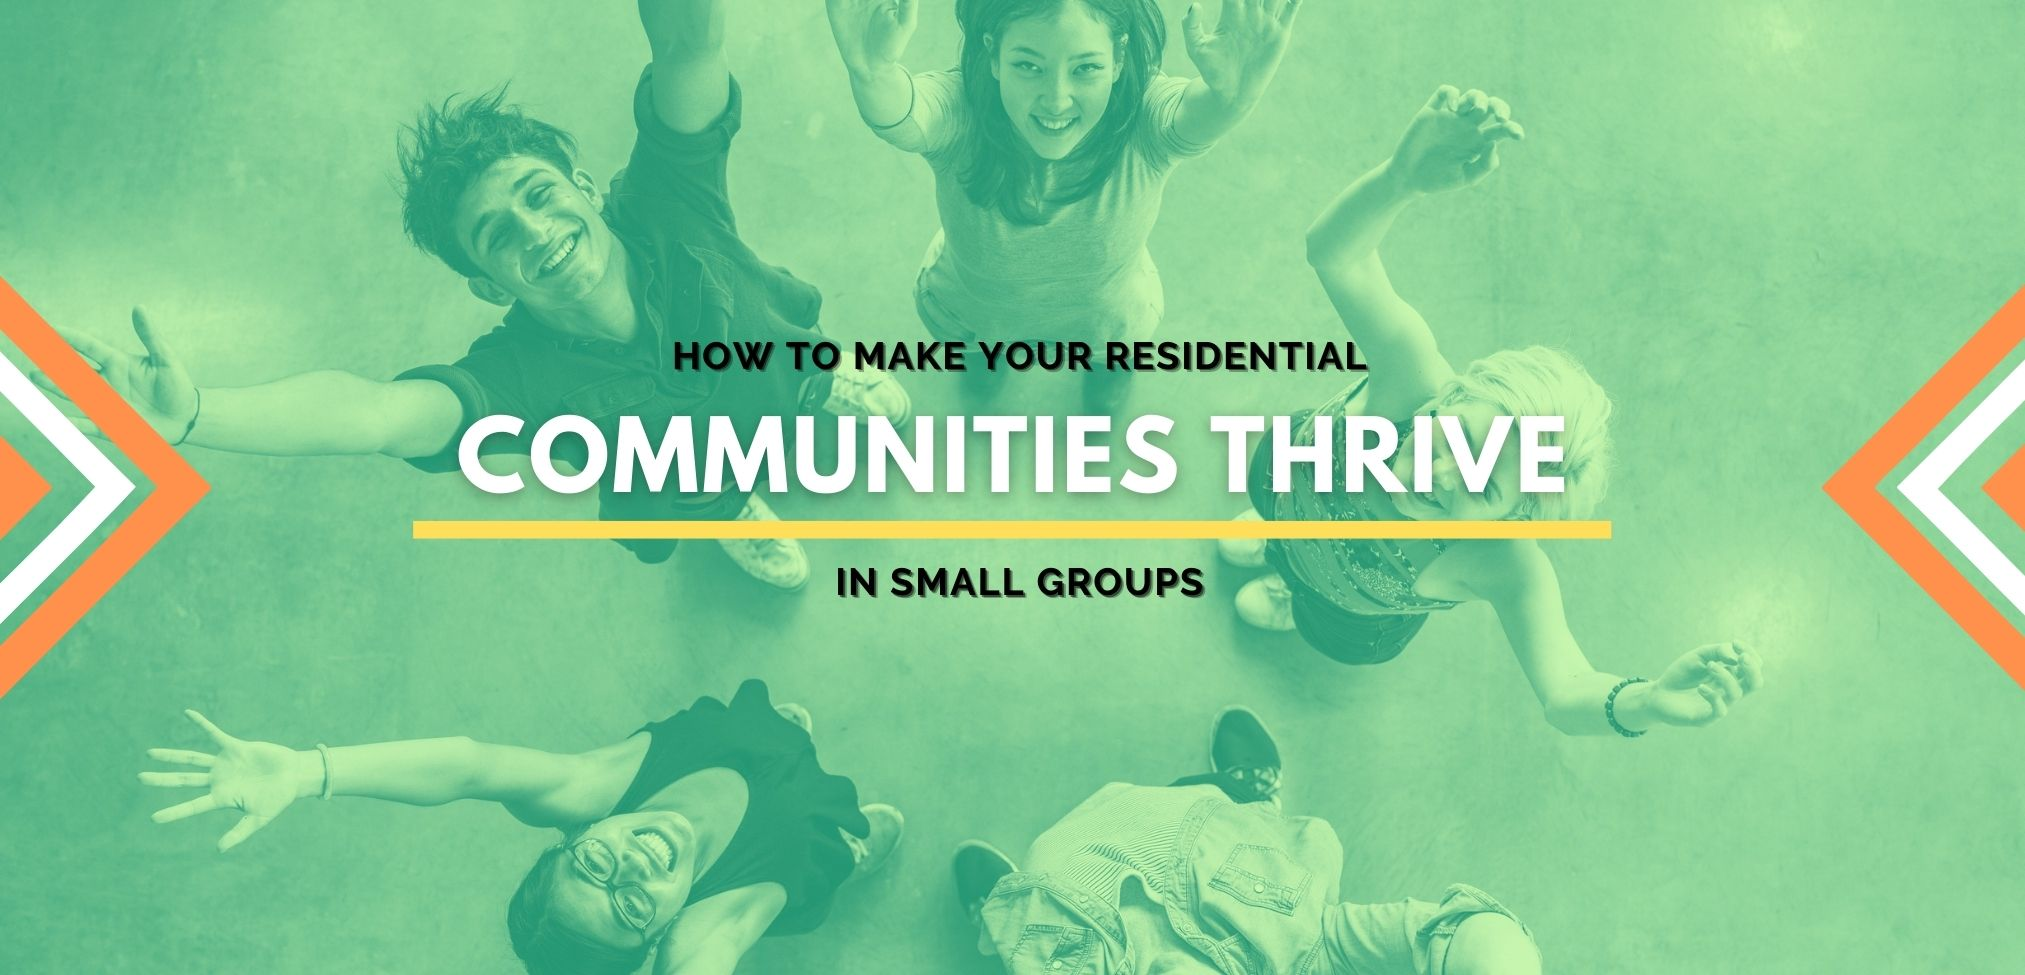 Safety in Numbers: How to Make Your Residential Communities Thrive in Small Groups